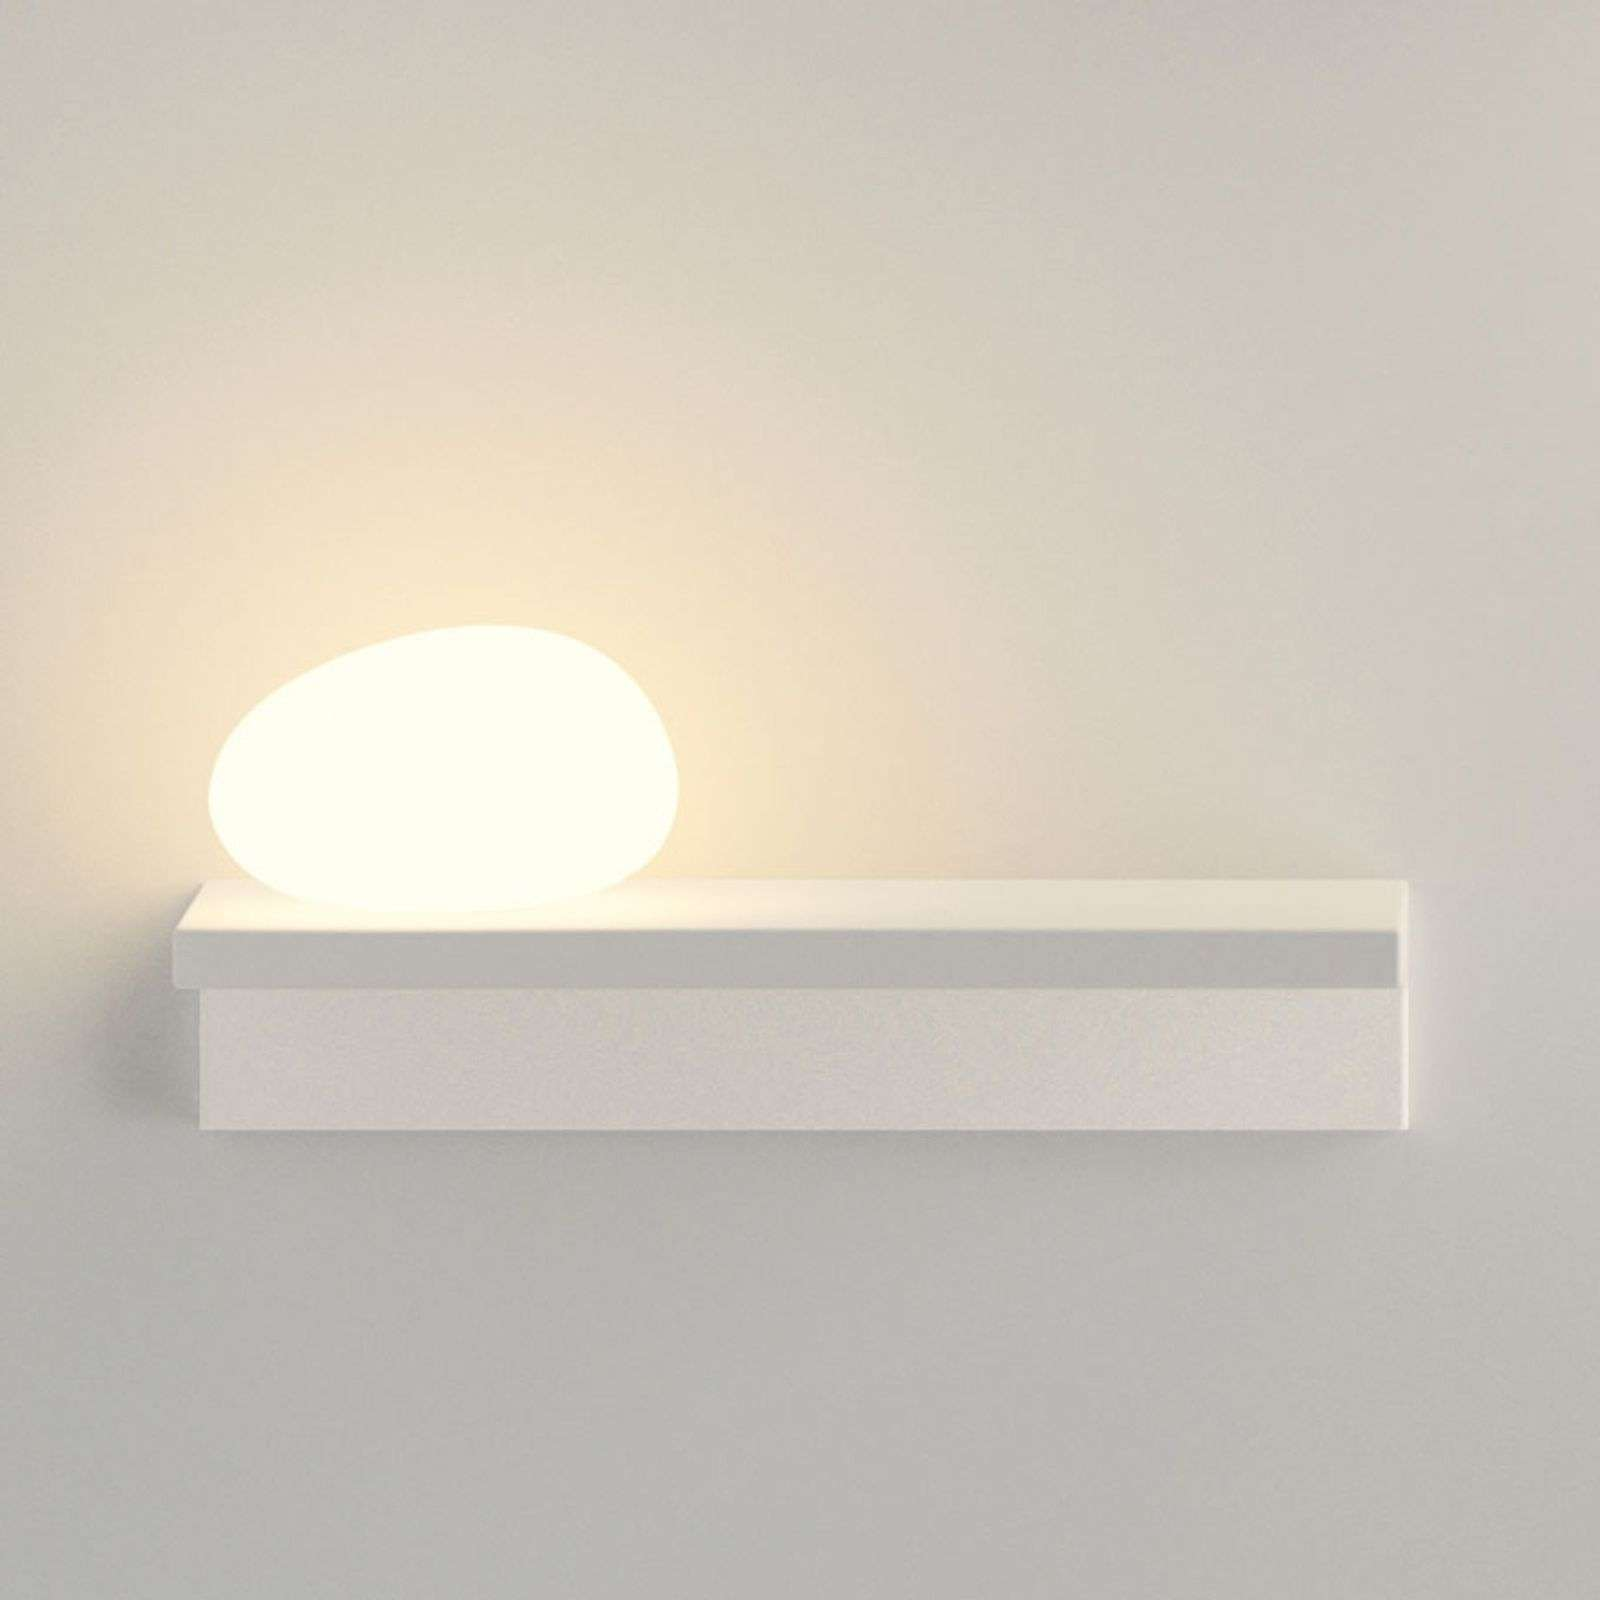 Applique LED Suite 14 cm, au design soigné